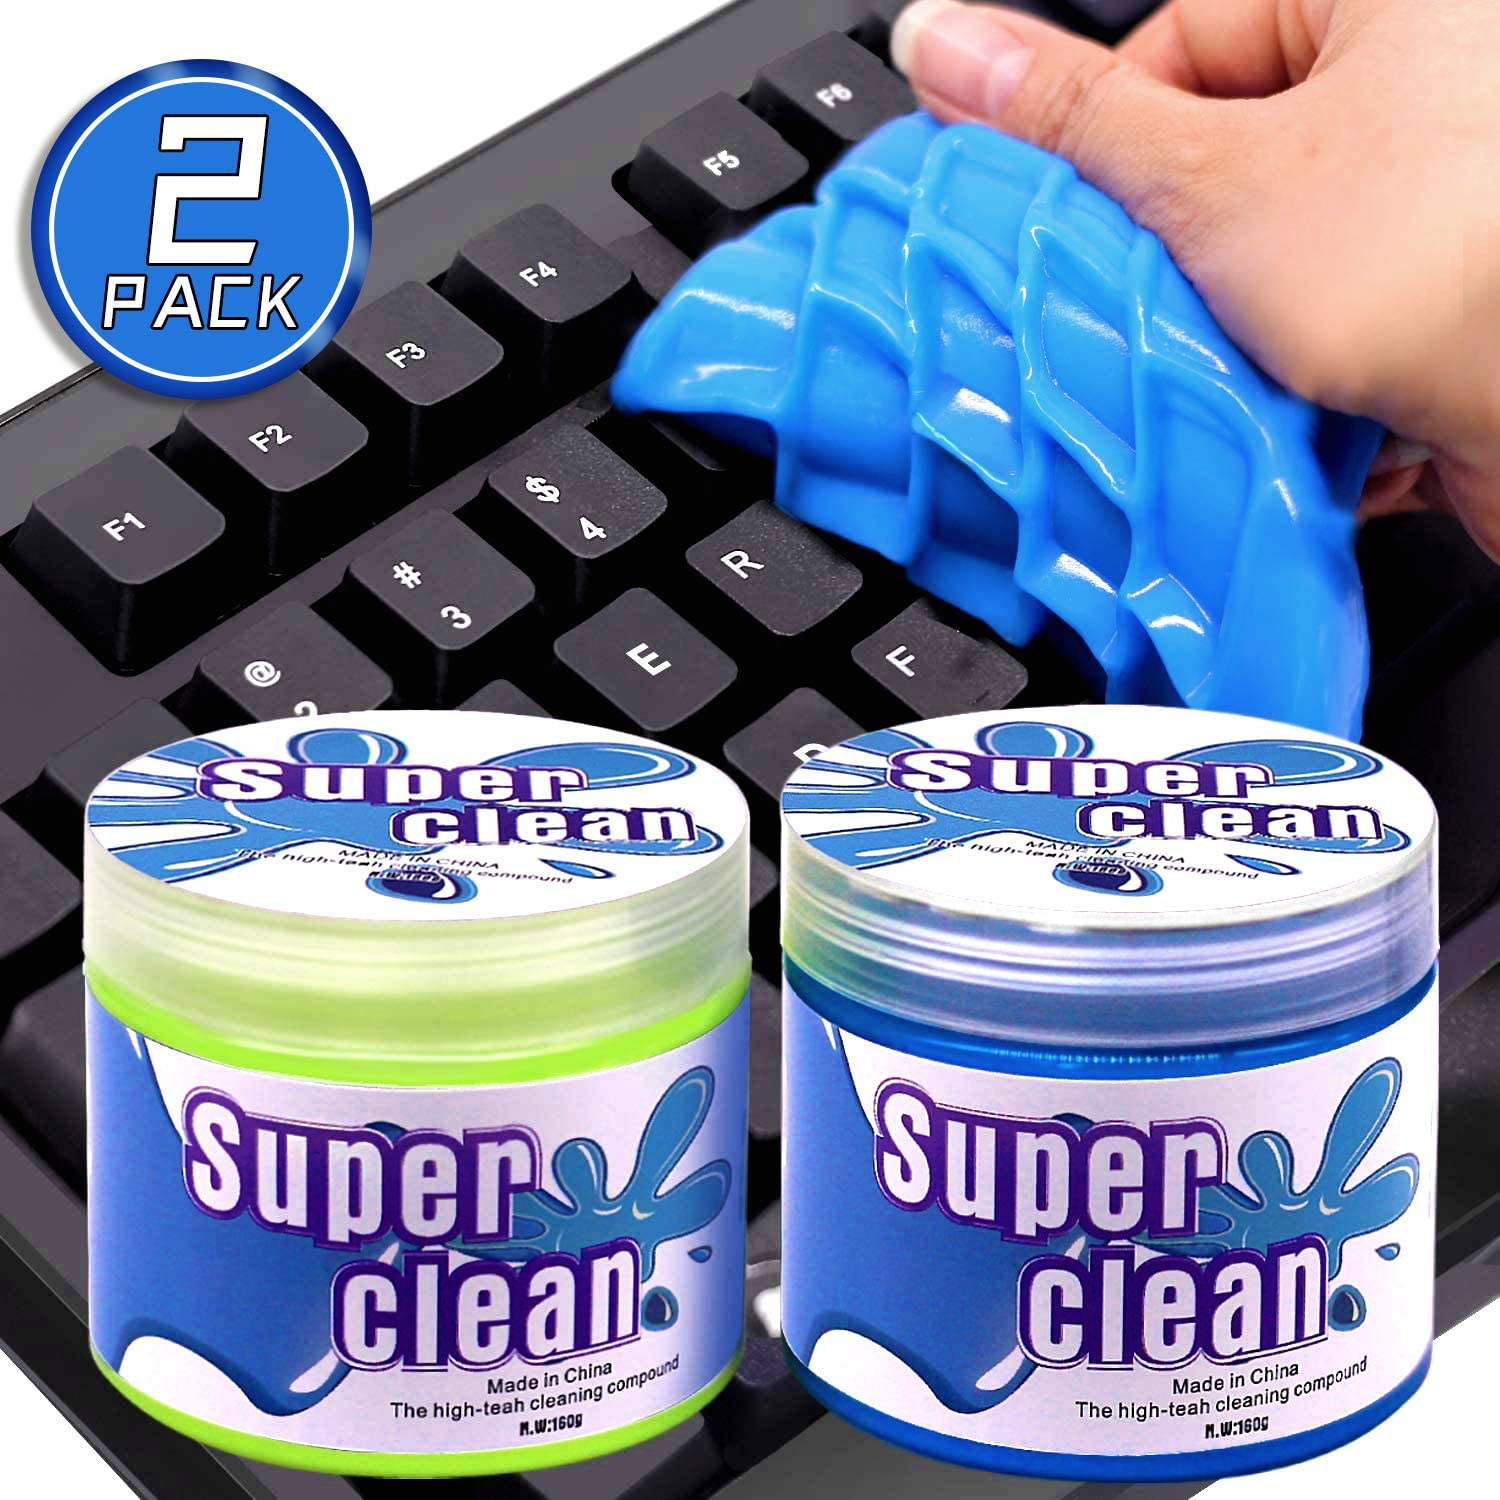 Tostace Keyboard Cleaning Gel Keyboard Cleaner, 2 PACK/160G Dust Cleaner Gel, Detailing Cleaning Gel for PC Tablet Laptop Keyboards, Car Vents, Printers, Home Office Electronics Cleaner Gel